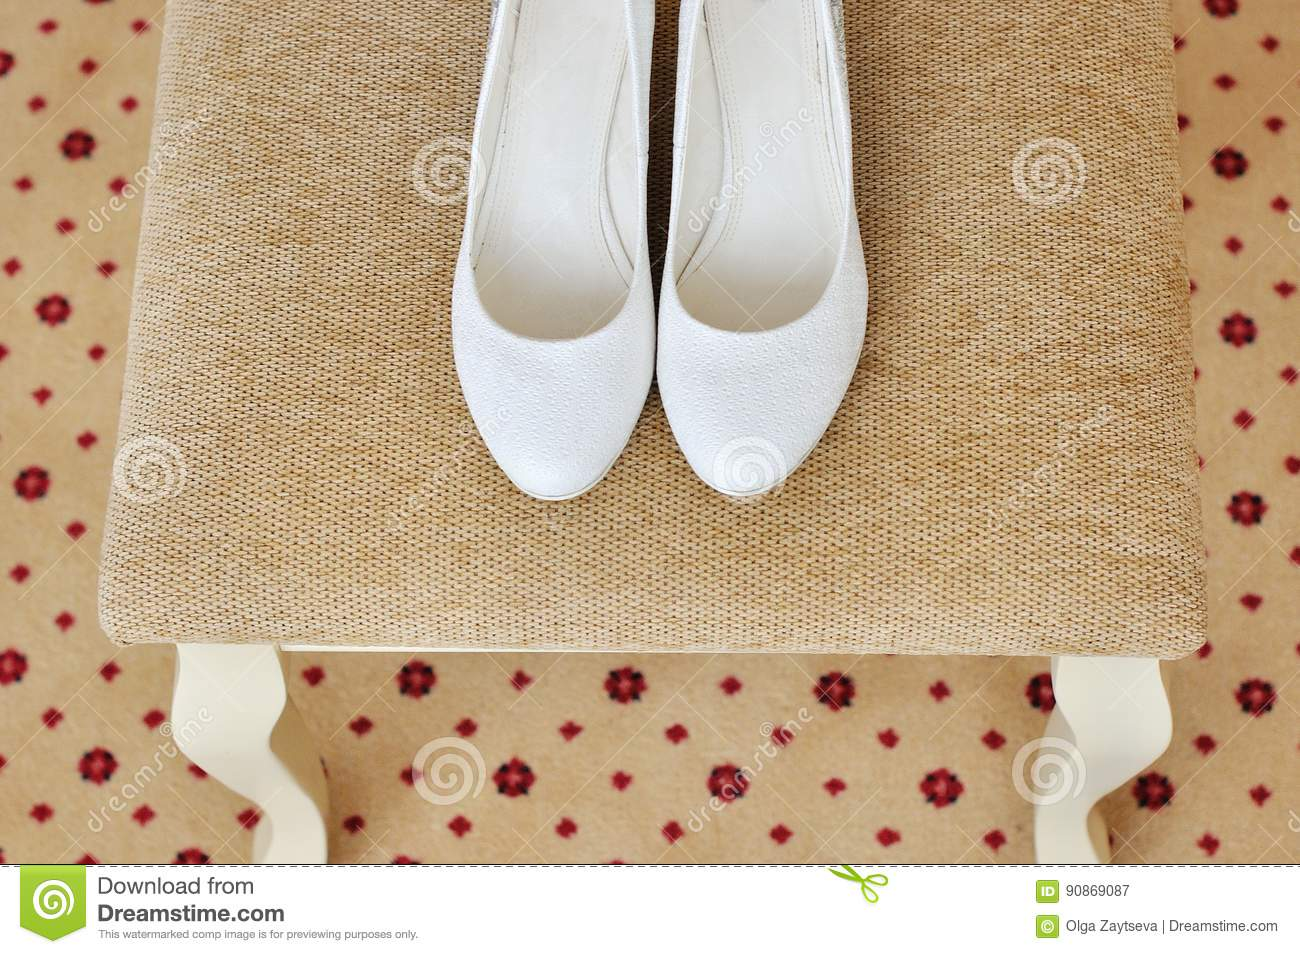 Closeup of a classic pair of white womens shoes